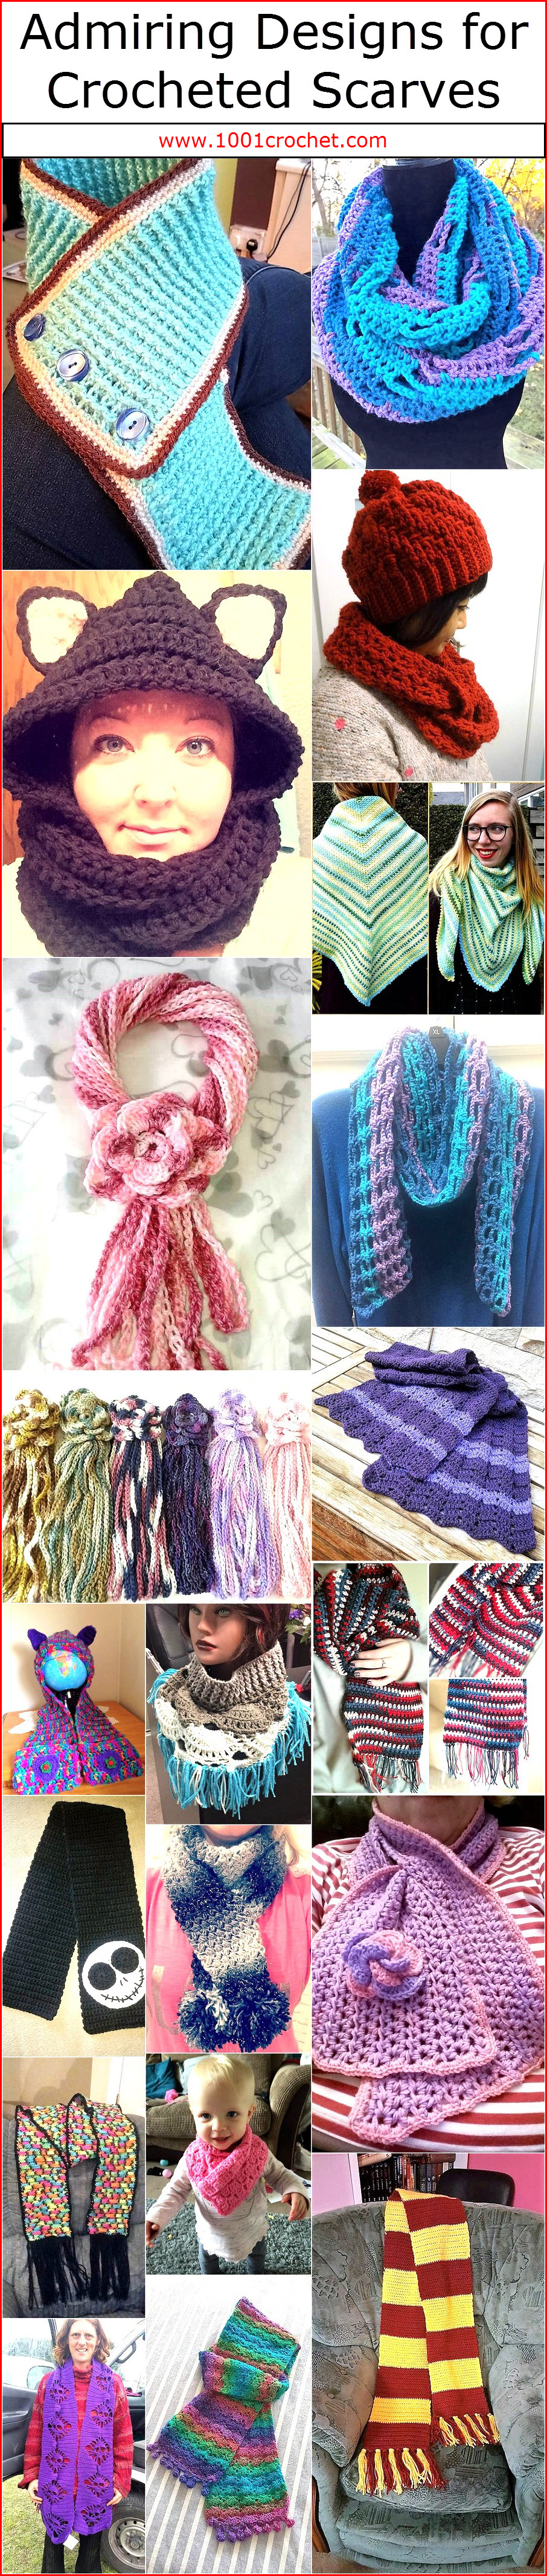 admiring-designs-for-crocheted-scarves